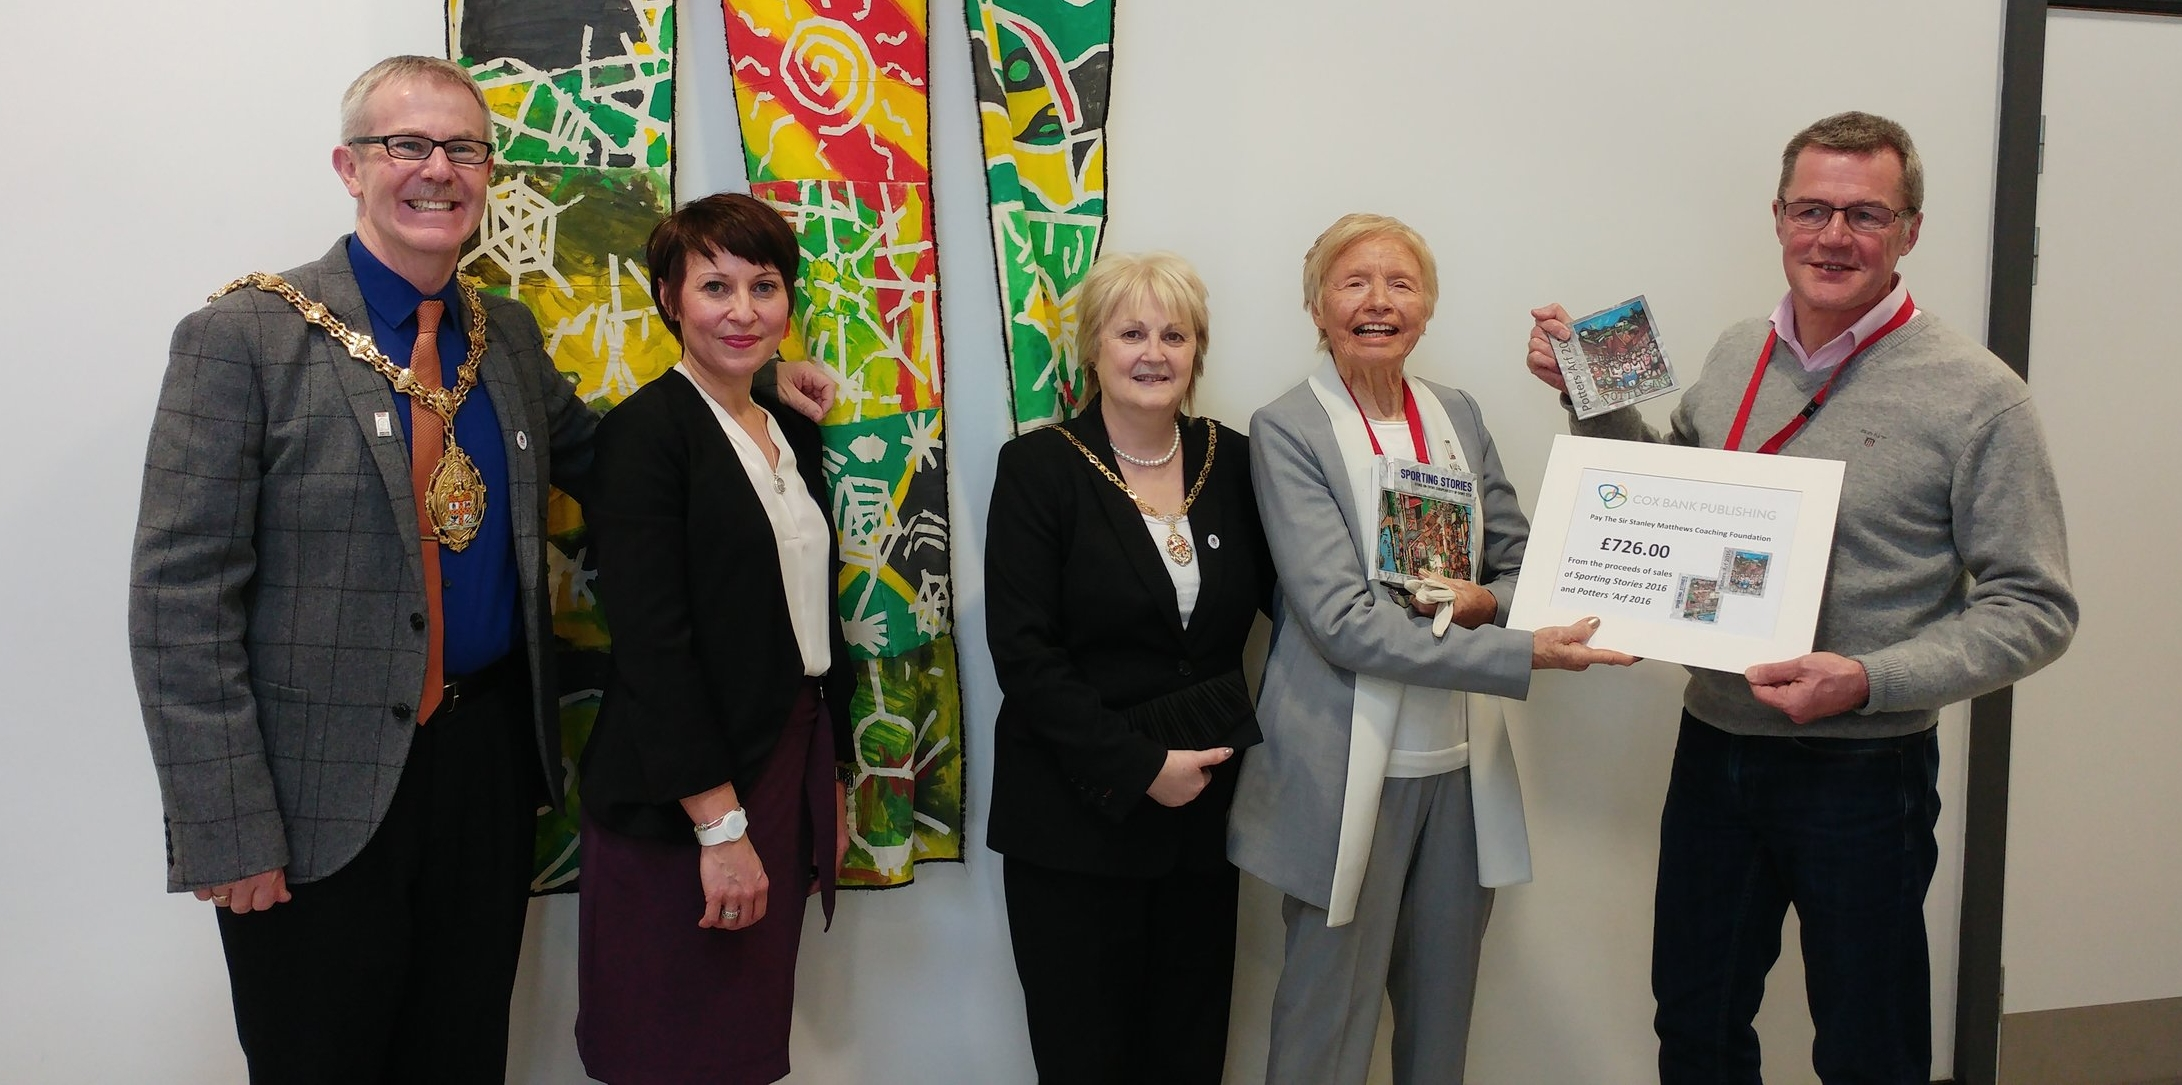 Peter Hooper handing over the cheque to Jean Gough, with (left to right): Stoke-on-Trent's Lord Mayor Anthony Munday; Lisa Hughes, headteacher at Kemball School; and Lady Mayoress Paula Munday